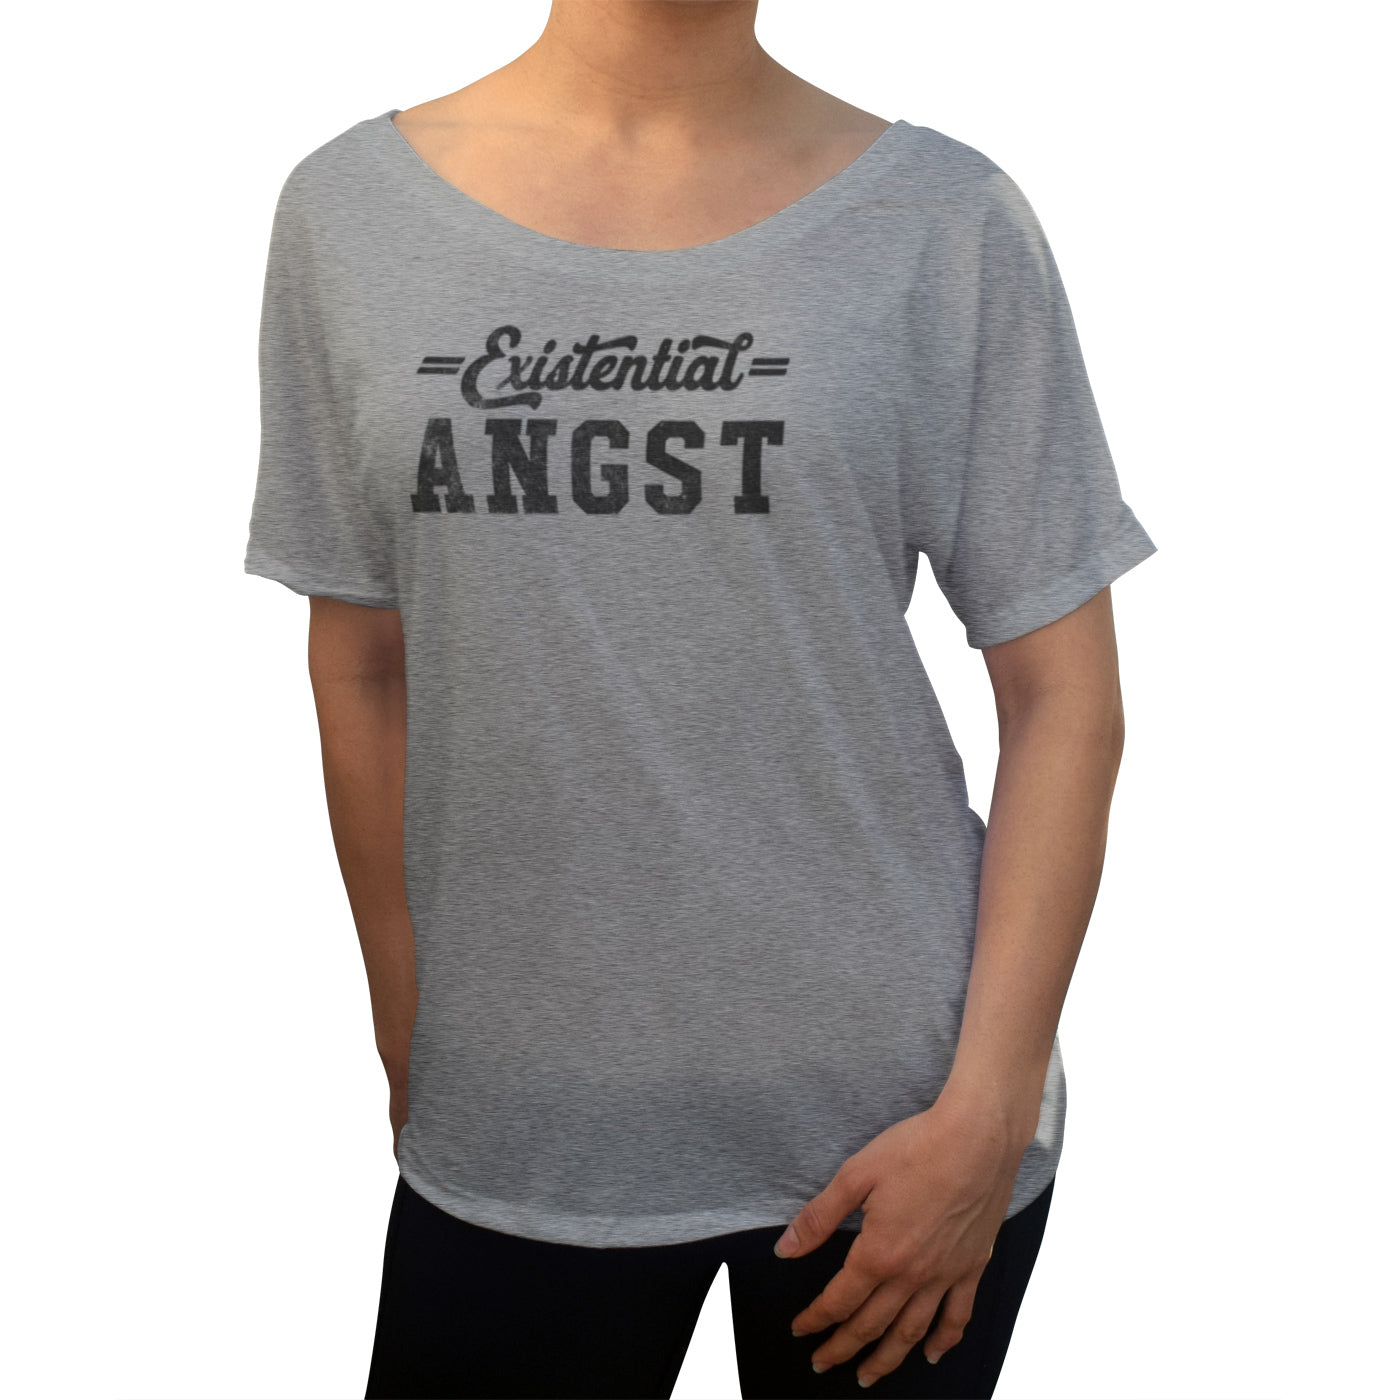 Women's Existential Angst Scoop Neck T-Shirt